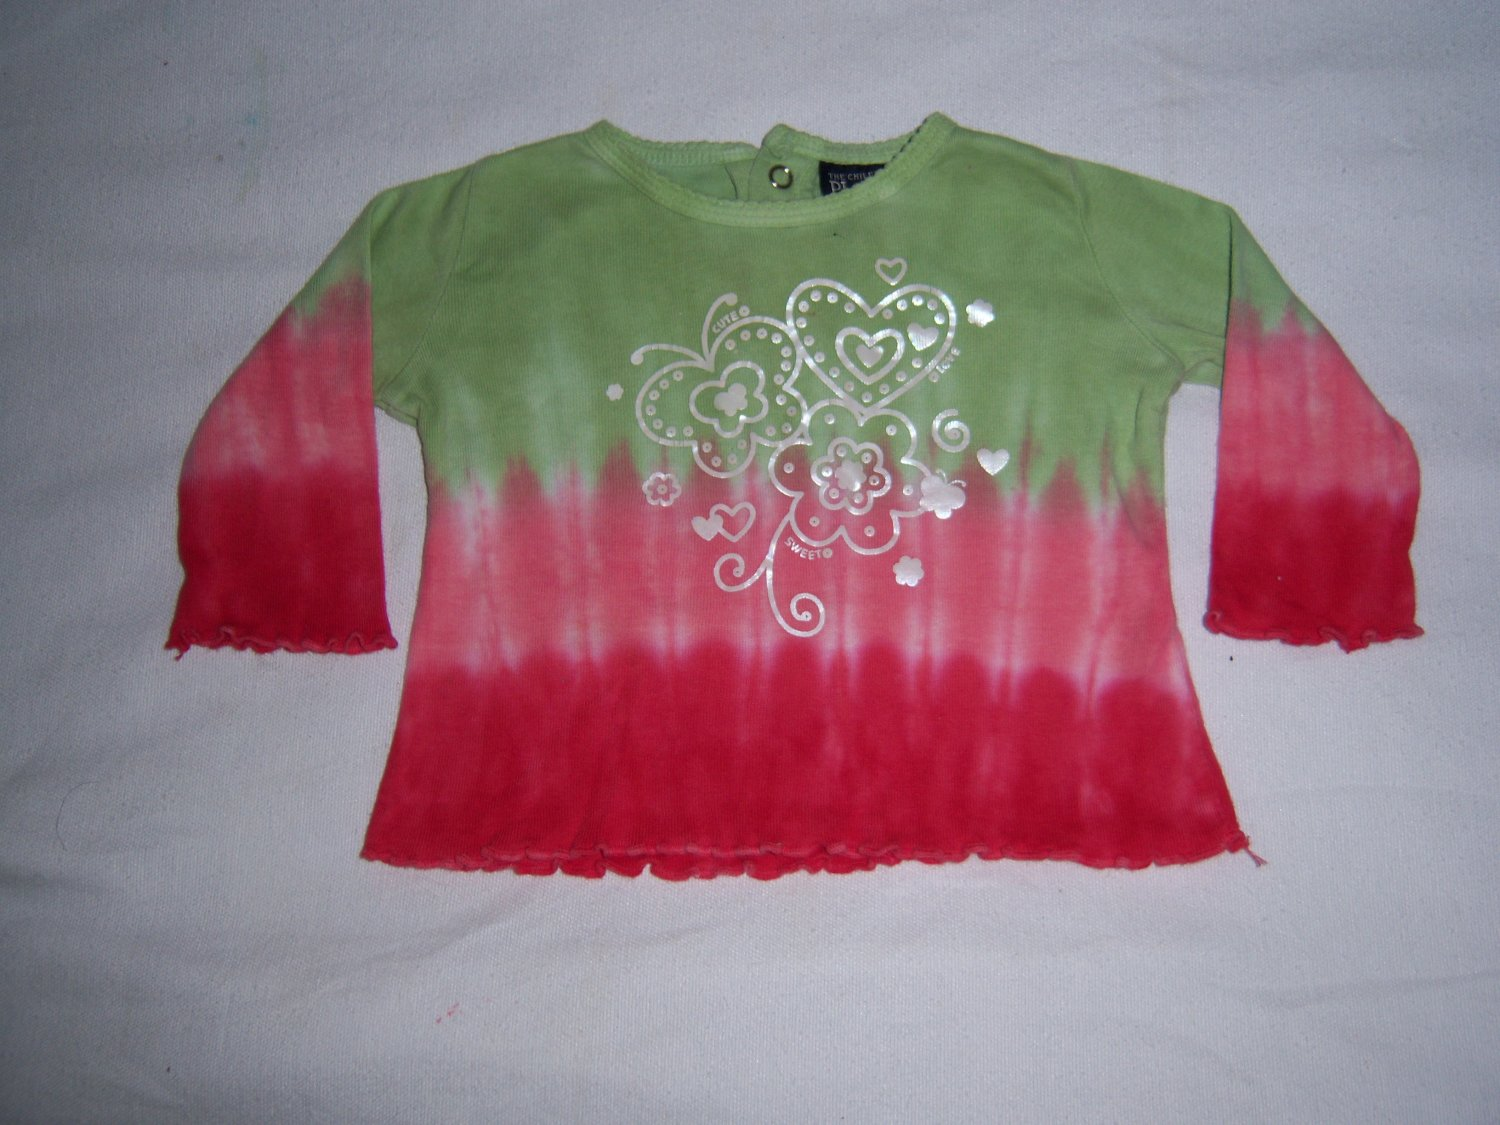 CHILDRENS PLACE INFANT BABY GIRLS LONG SLEEVE TOP 6-9M